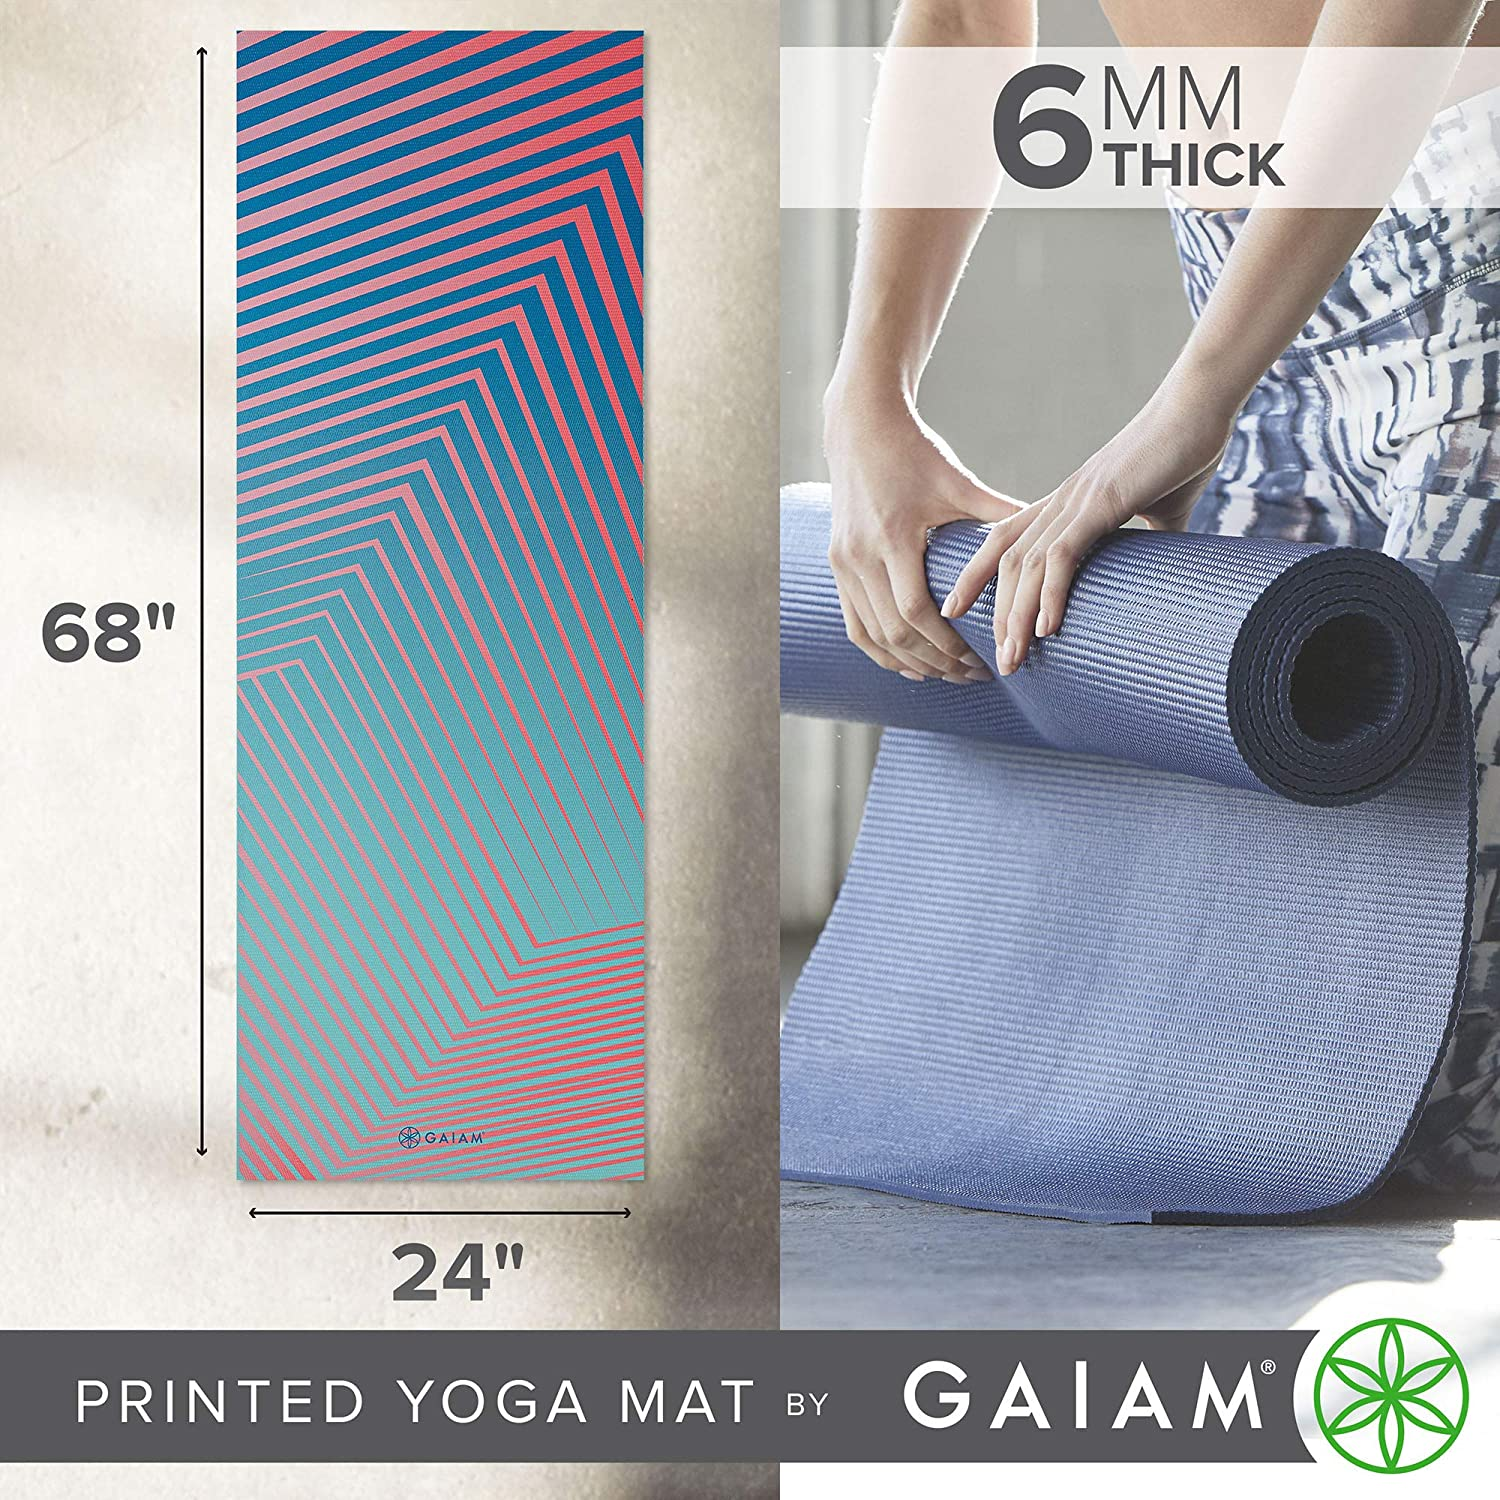 Premium 6mm Print Extra Thick Non Slip Exercise /& Fitness Mat for All Types of Yoga Gaiam Yoga Mat Pilates /& Floor Workouts 68 x 24 x 6mm